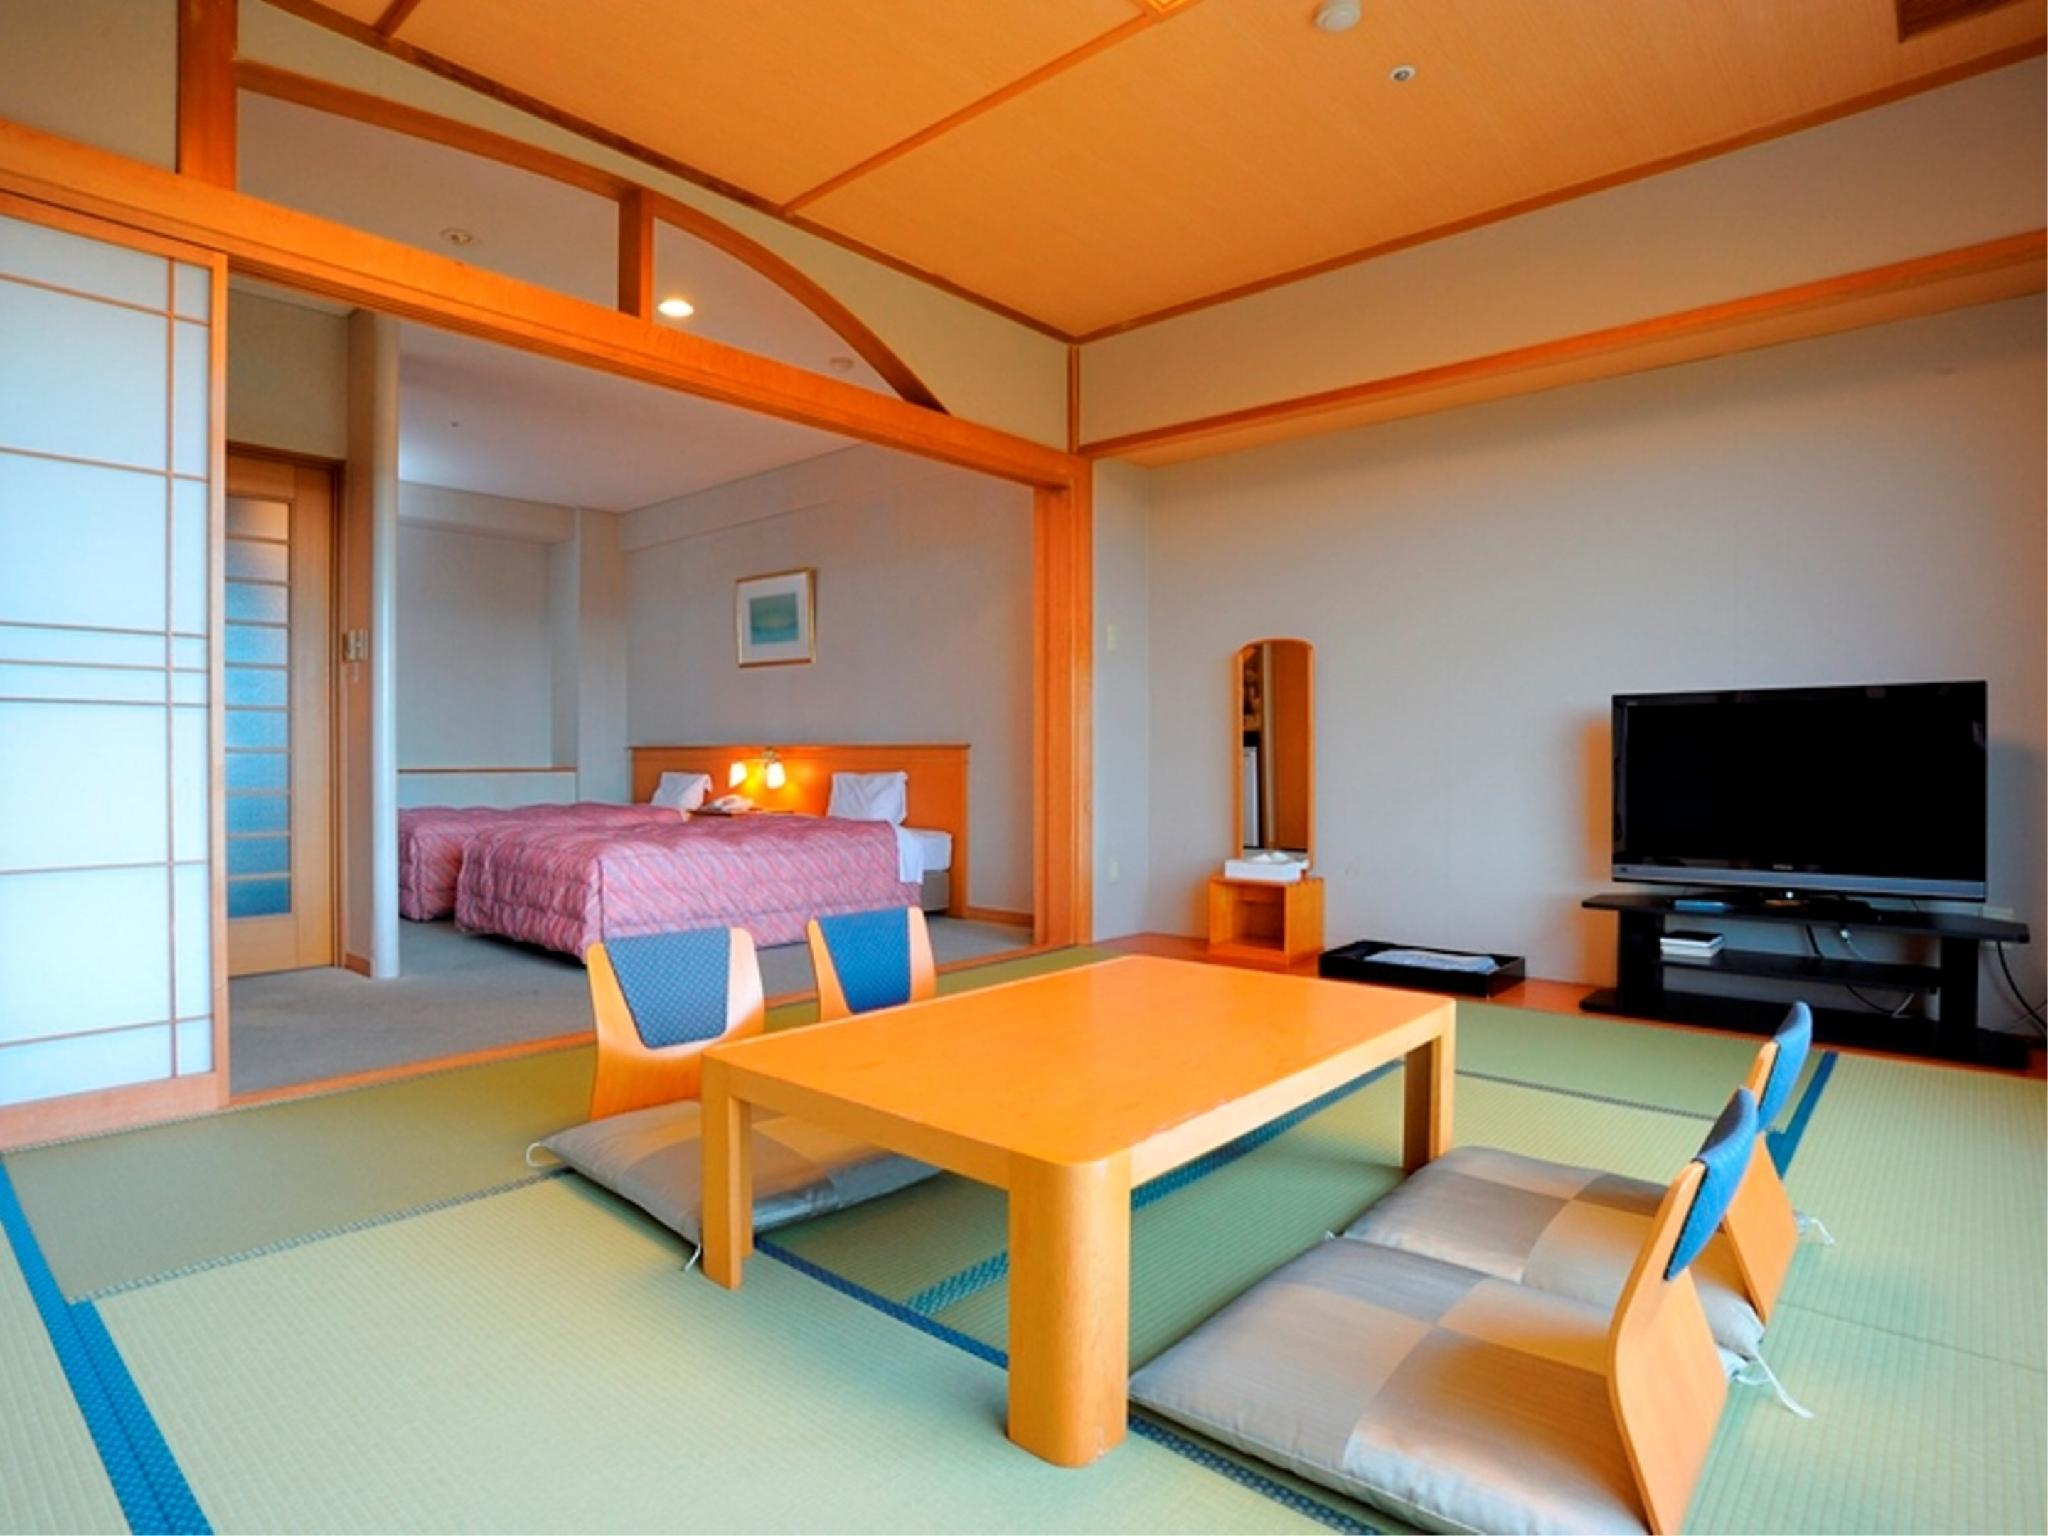 和洋室<最上階>【ノースウイング】(禁煙 52.3平米) (Japanese/Western-style Room (2 Beds, Top Floor, North Wing))